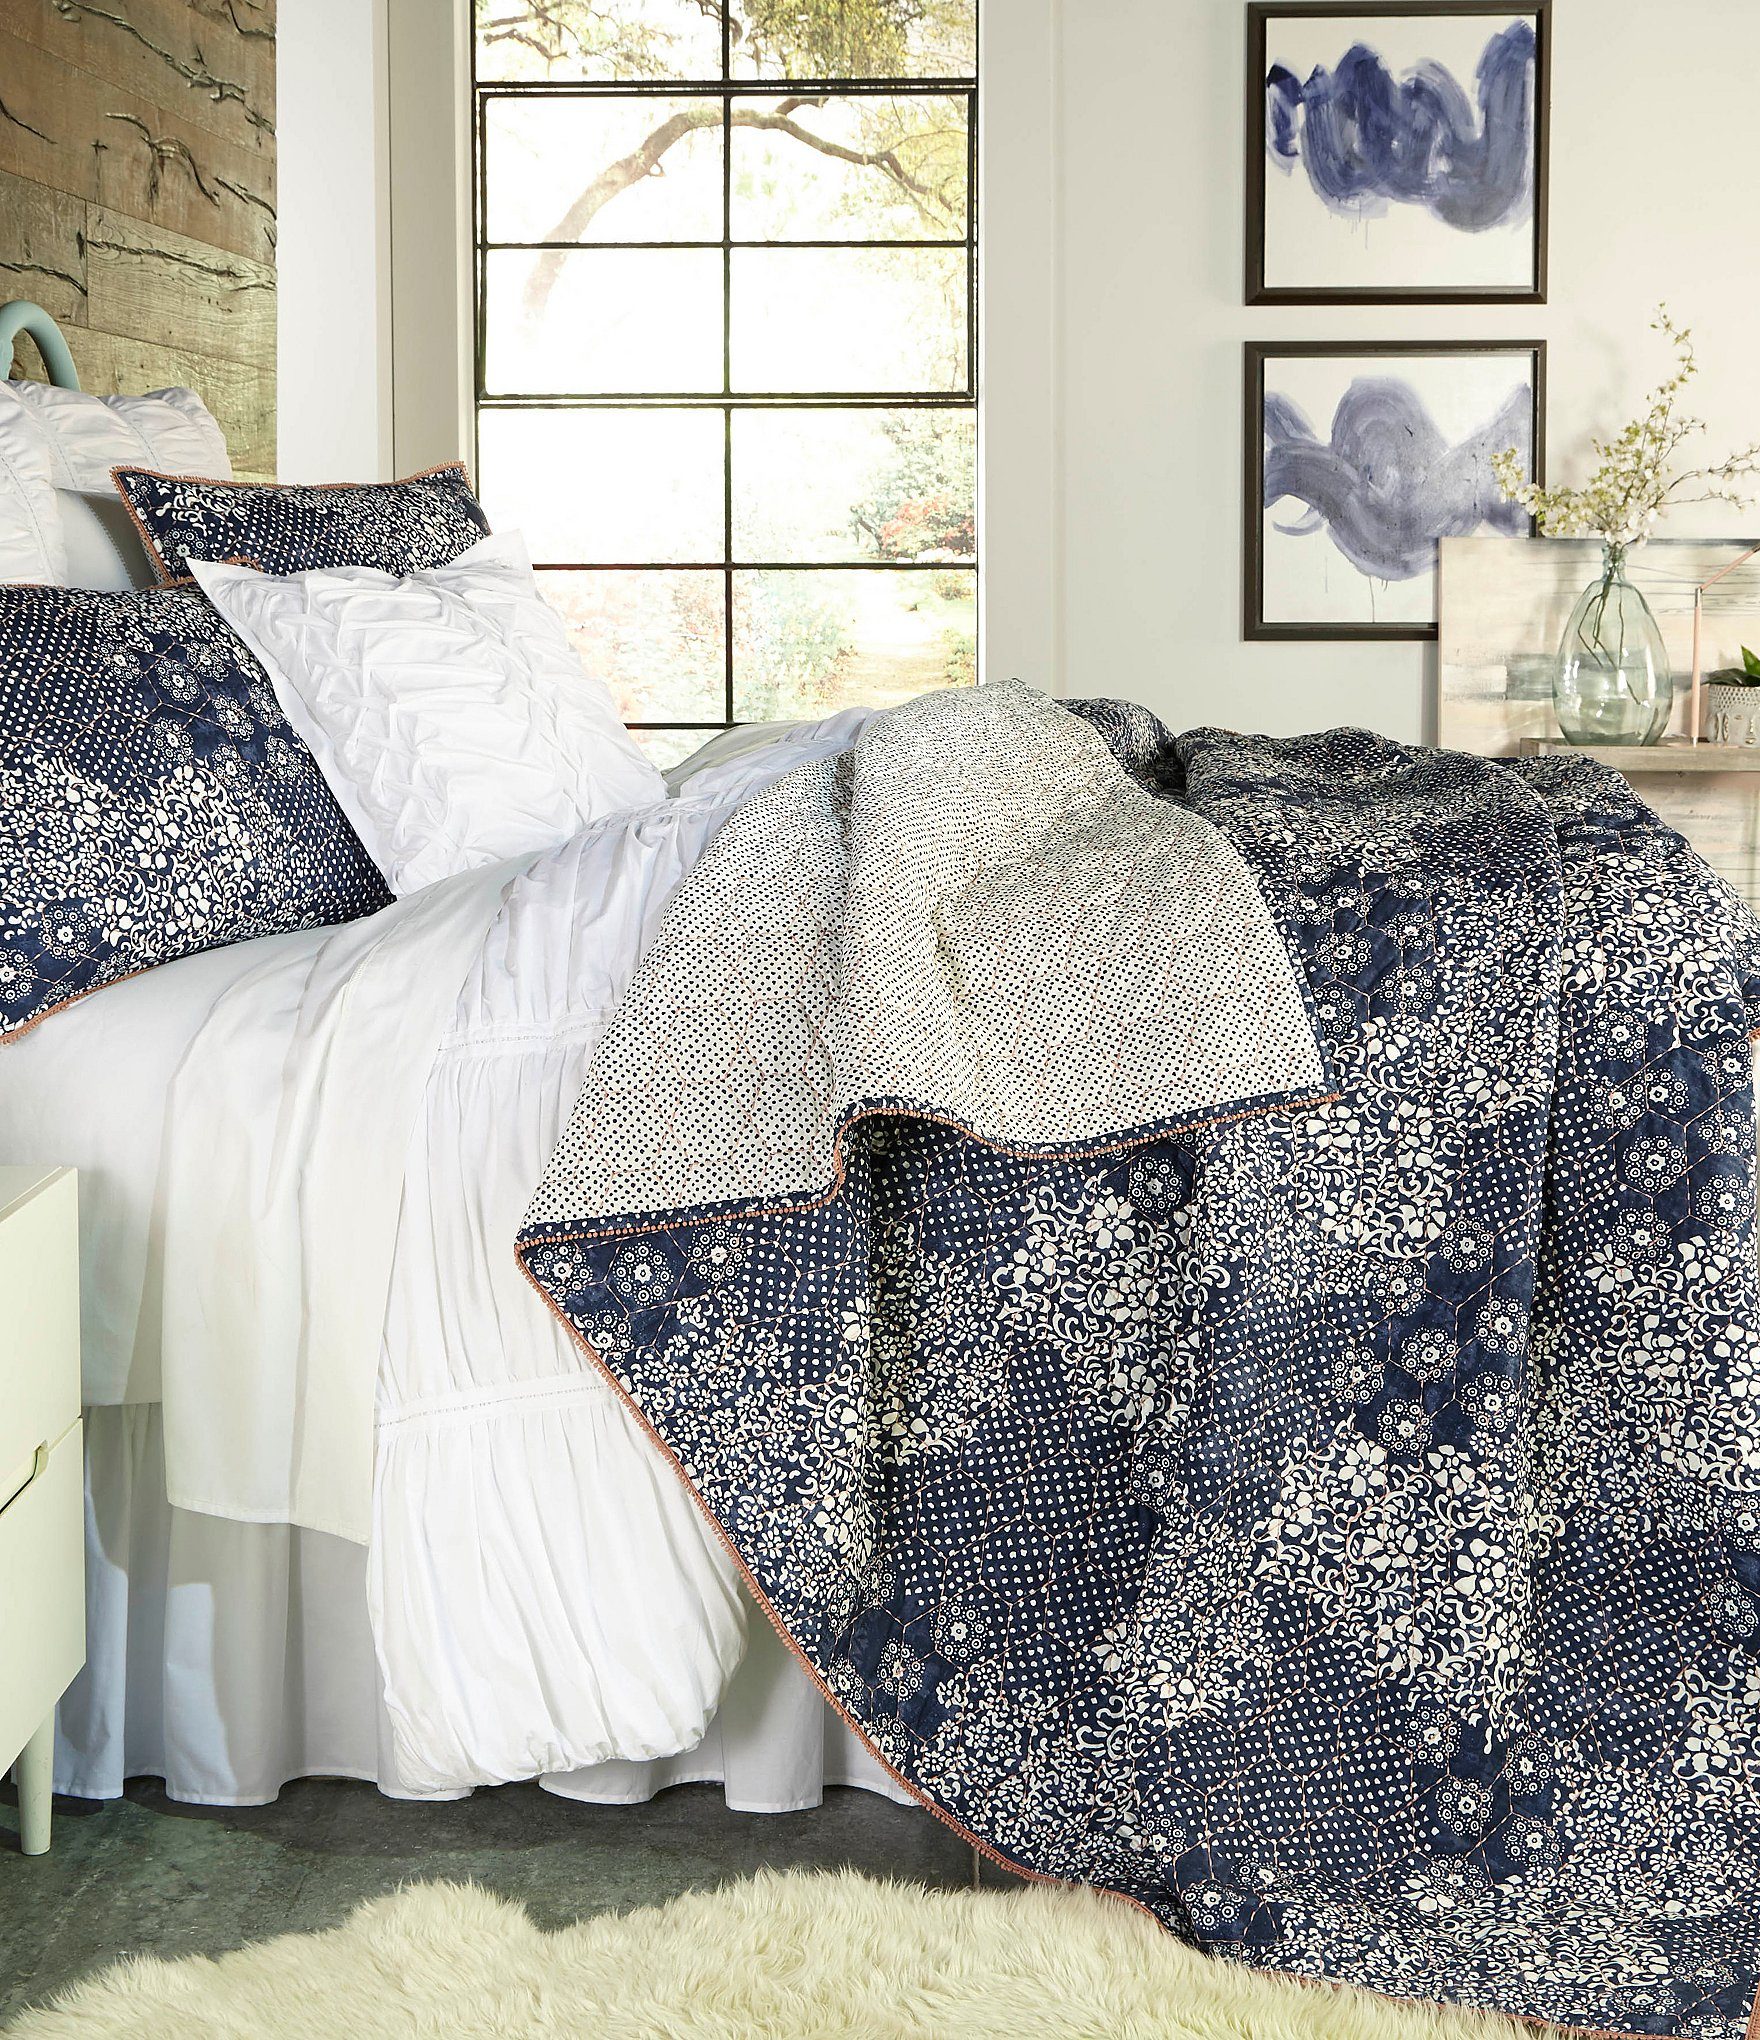 clearance sale Bedding & Bedding Collections